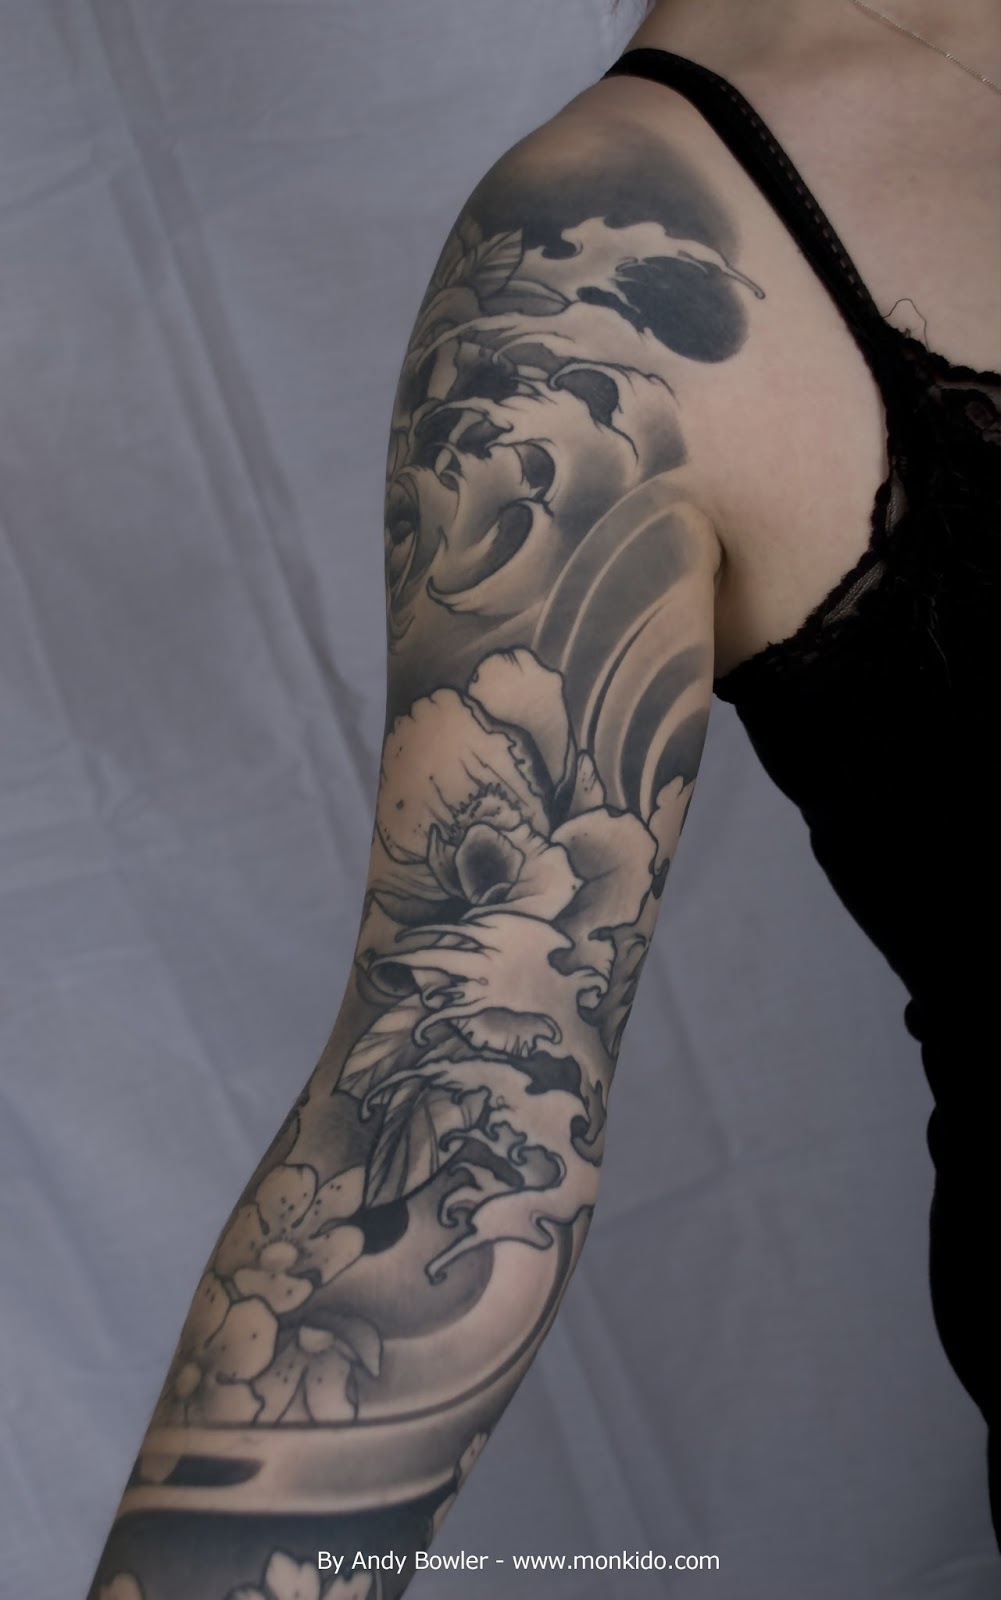 monki do tattoo studio custom japanese sleeve by andy